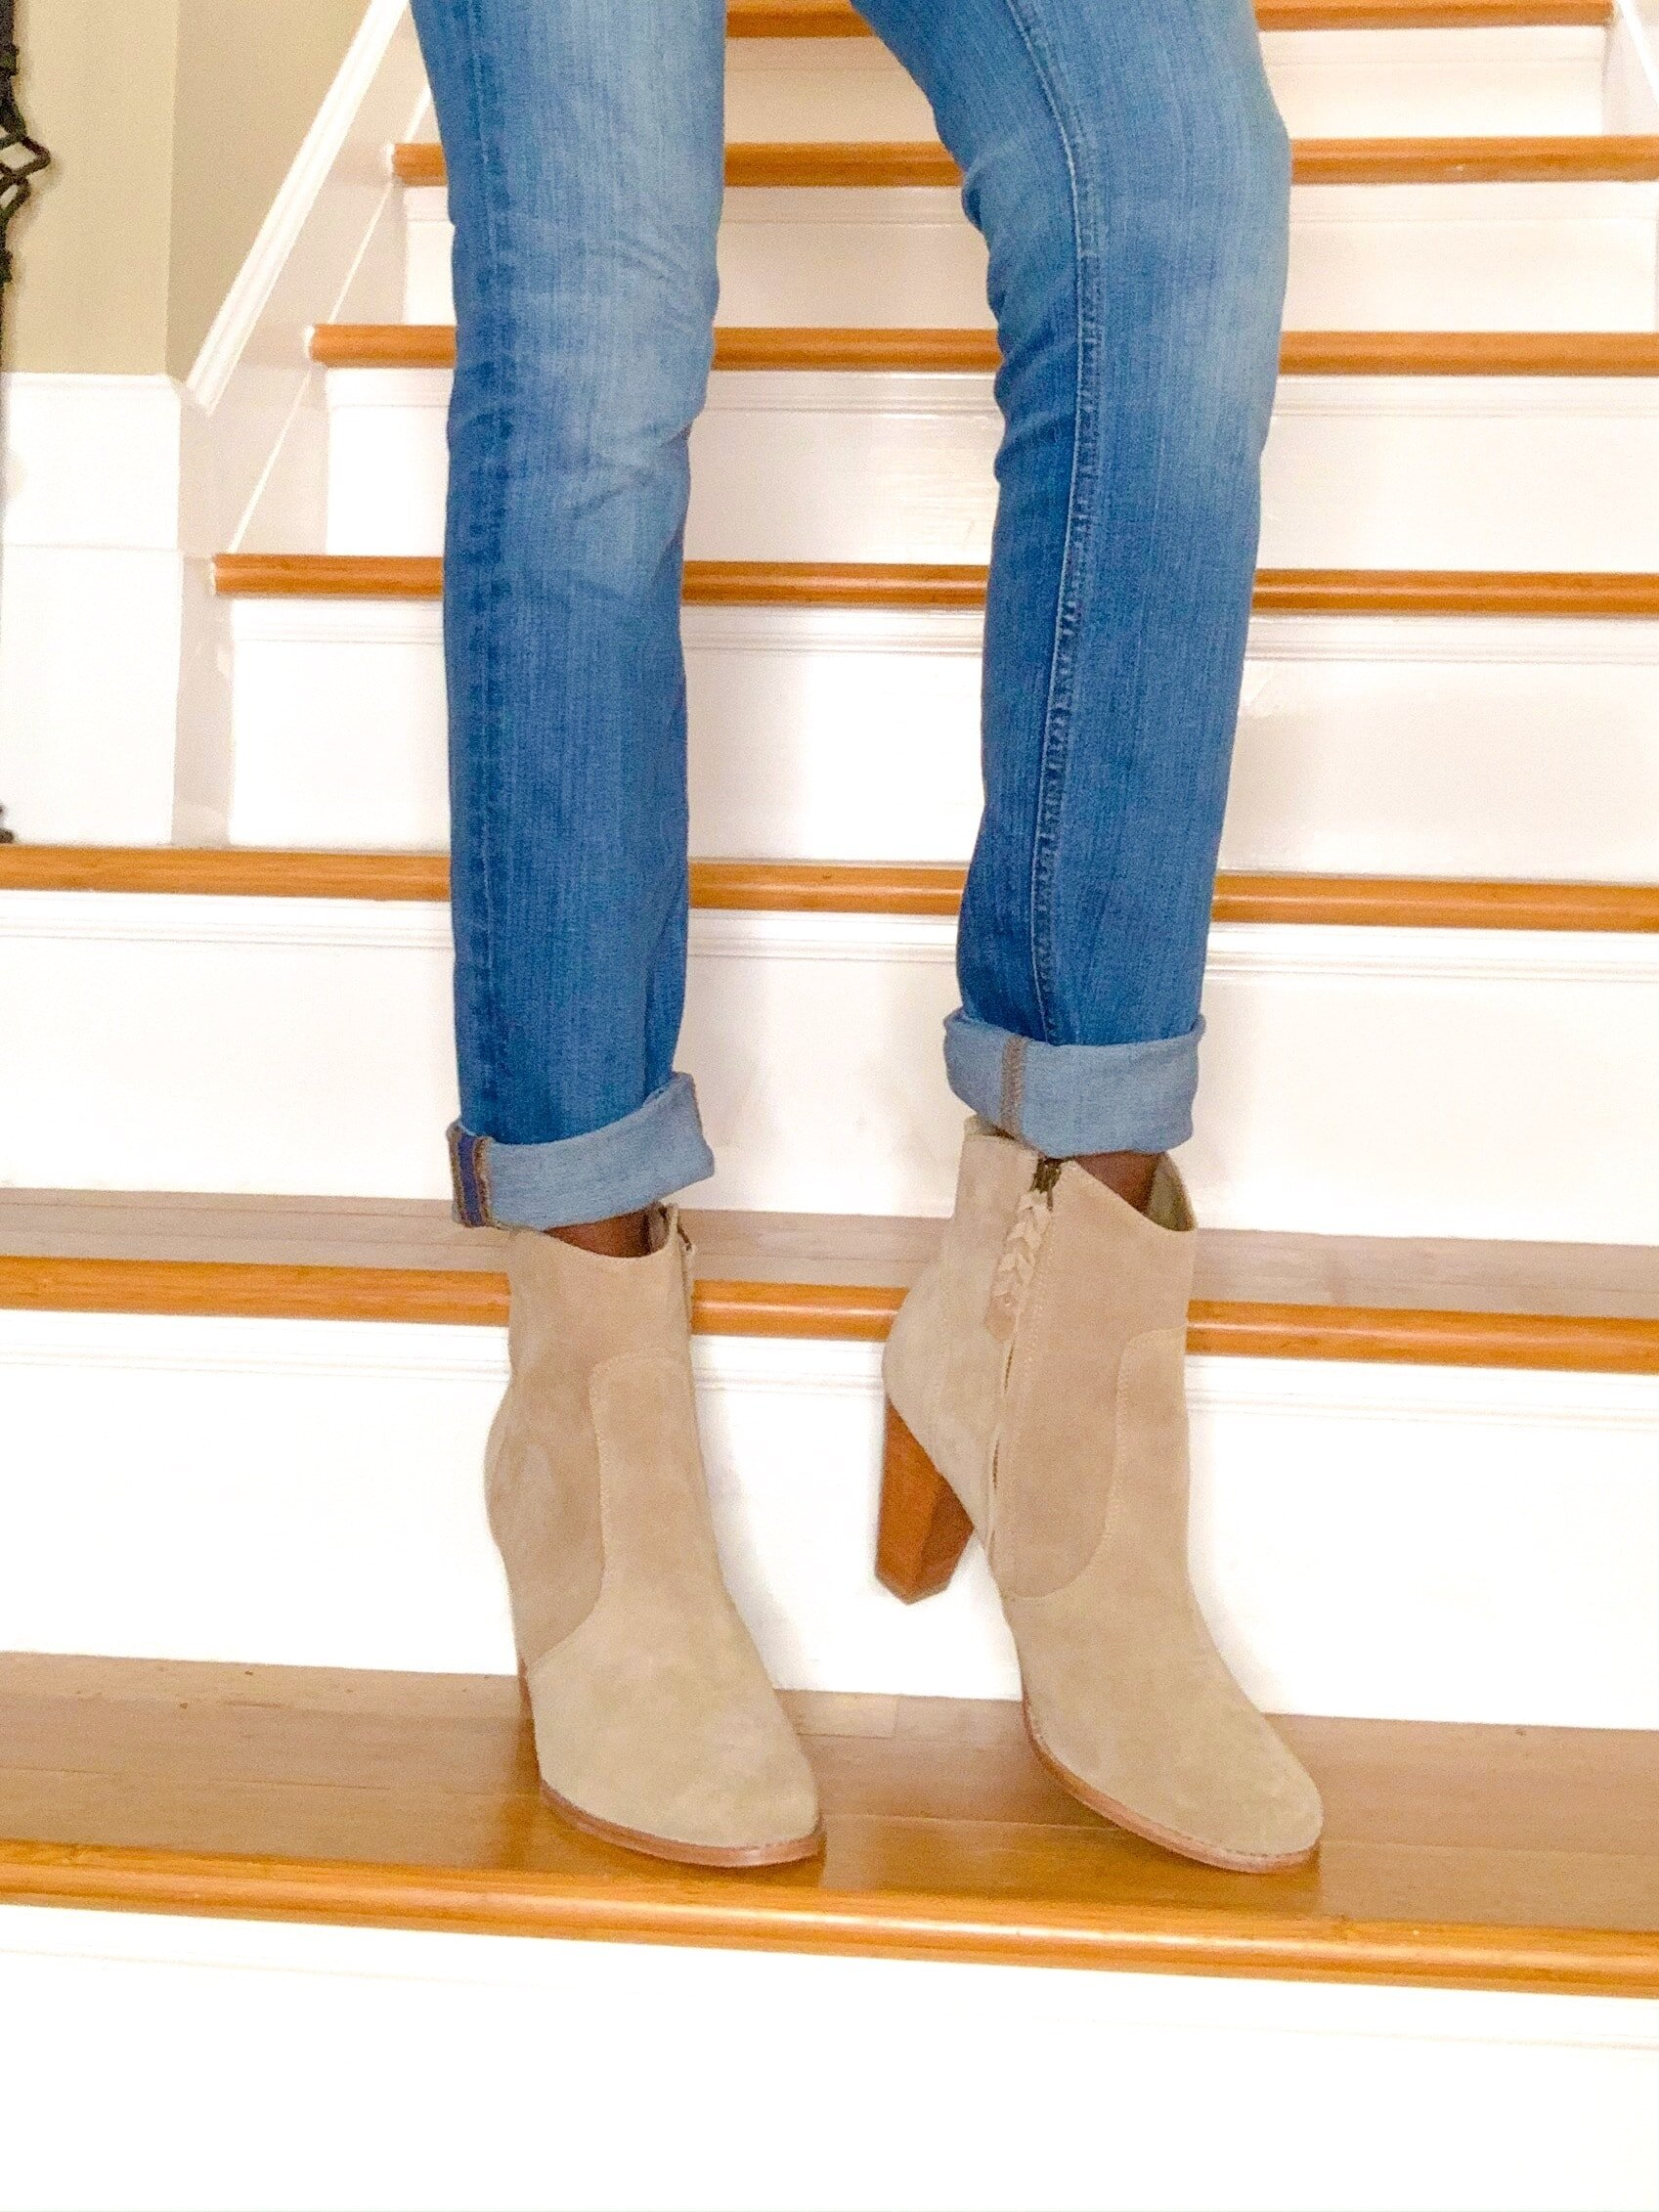 cuffed jeans and ankle boots-min.jpg